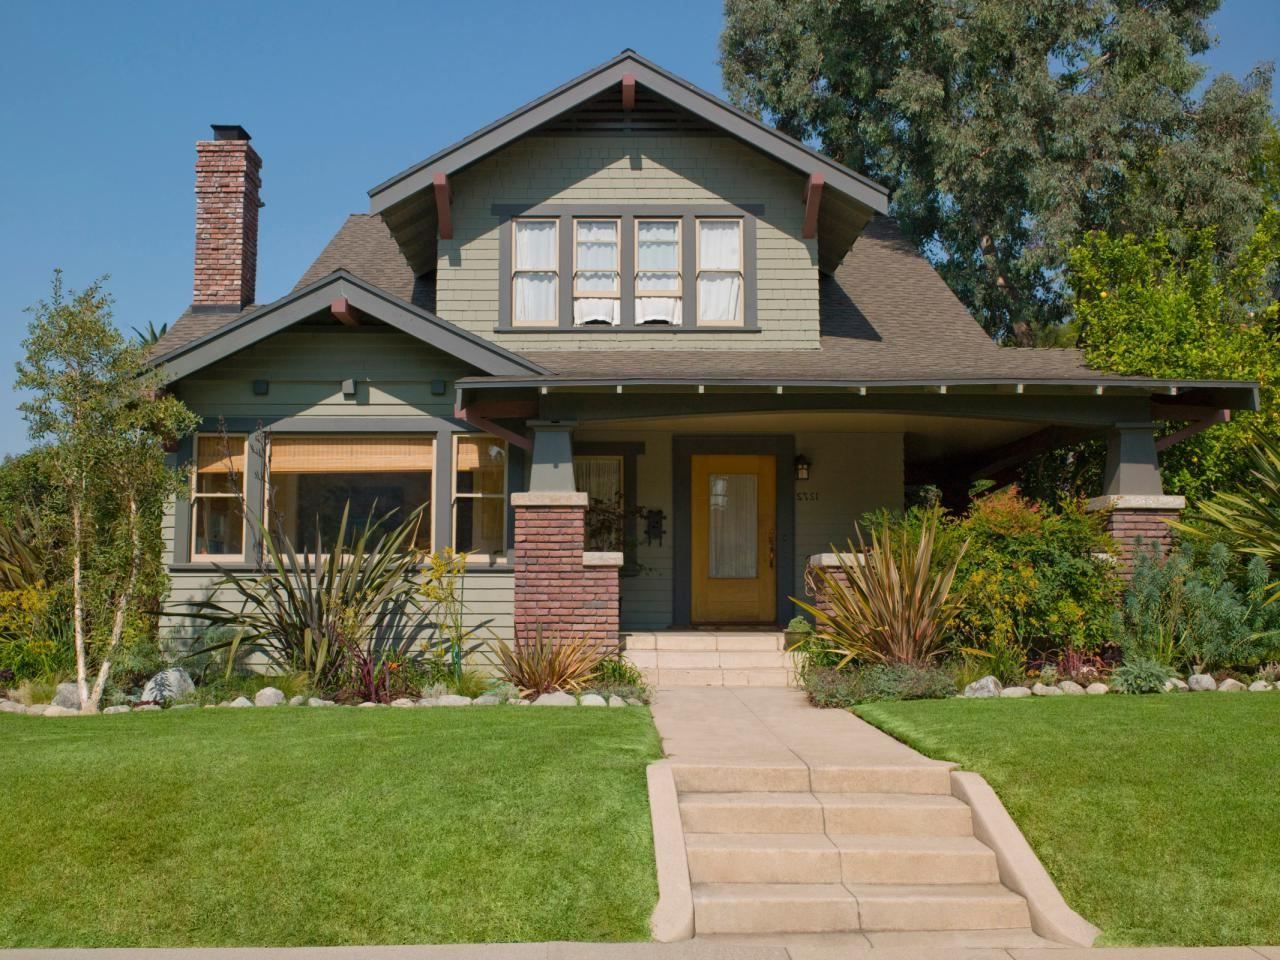 craftsman home exterior paint colors tune wallpaper deep red brick house painting cost brown brick wall - Craftsman Home Exterior